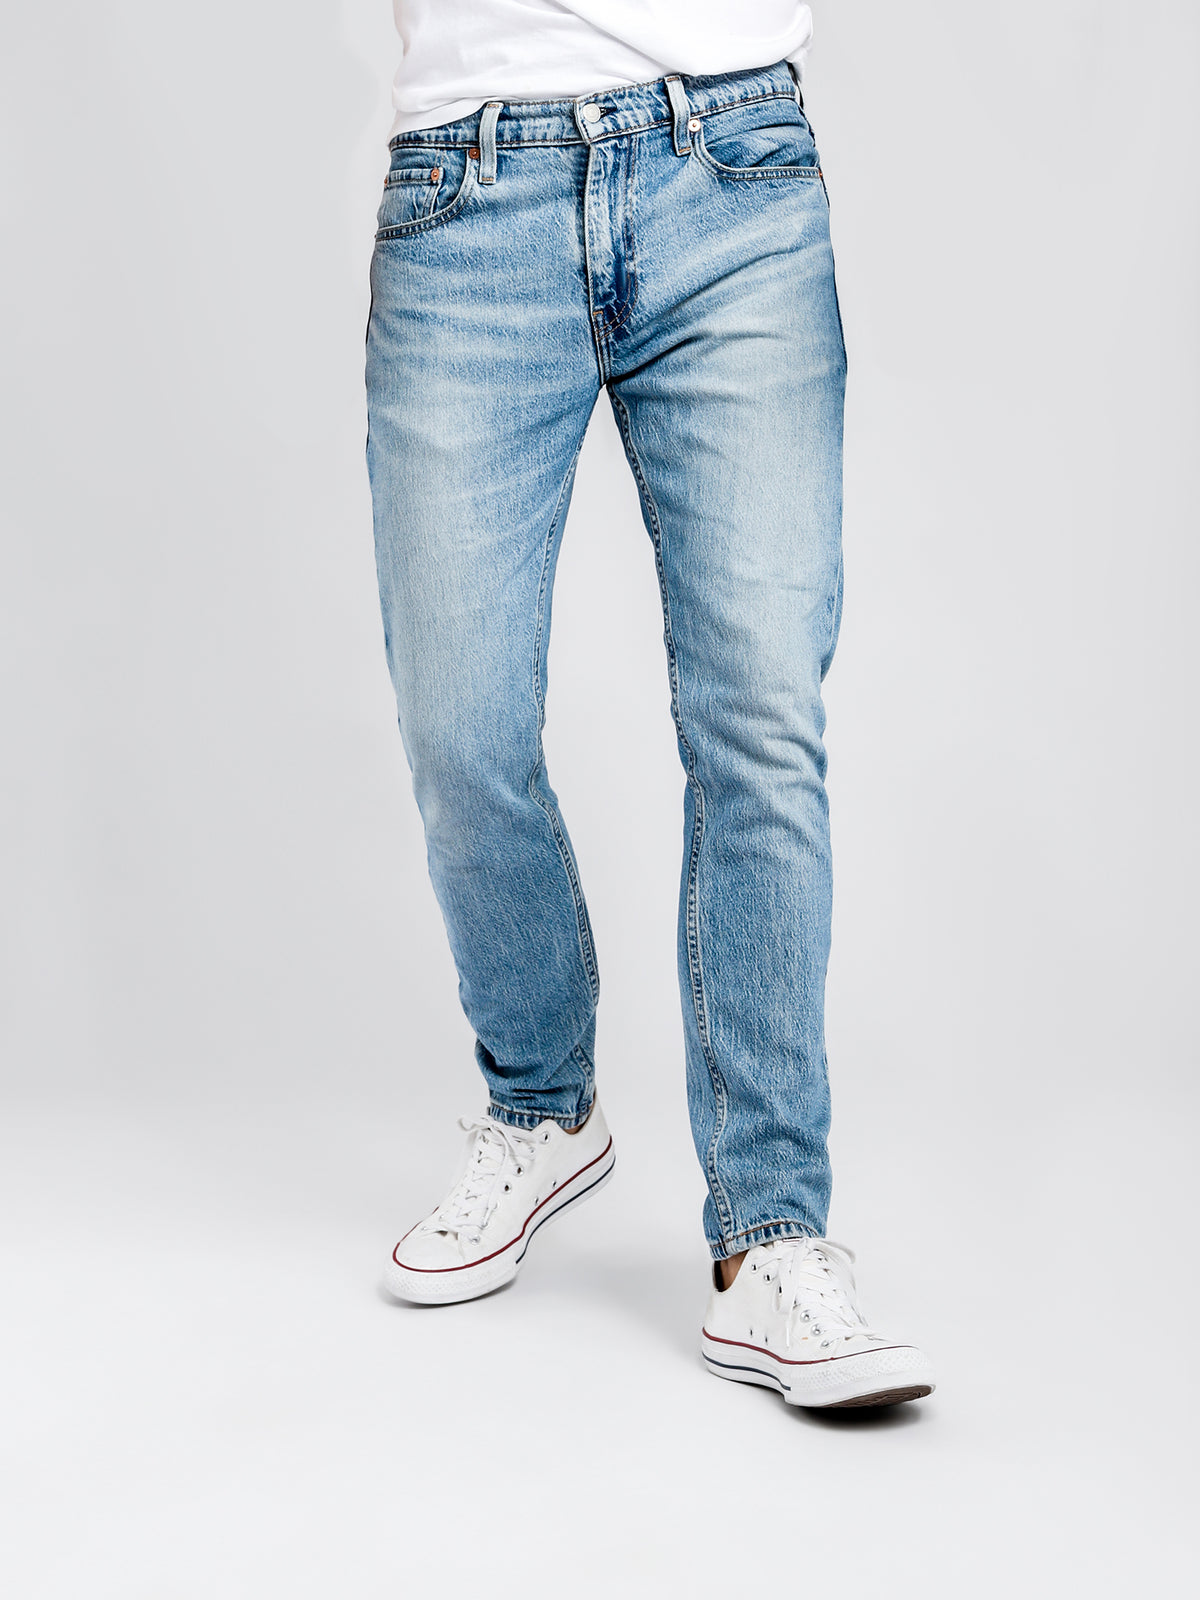 512 Slim Tapered Fit Jeans in Bass Super Light Denim